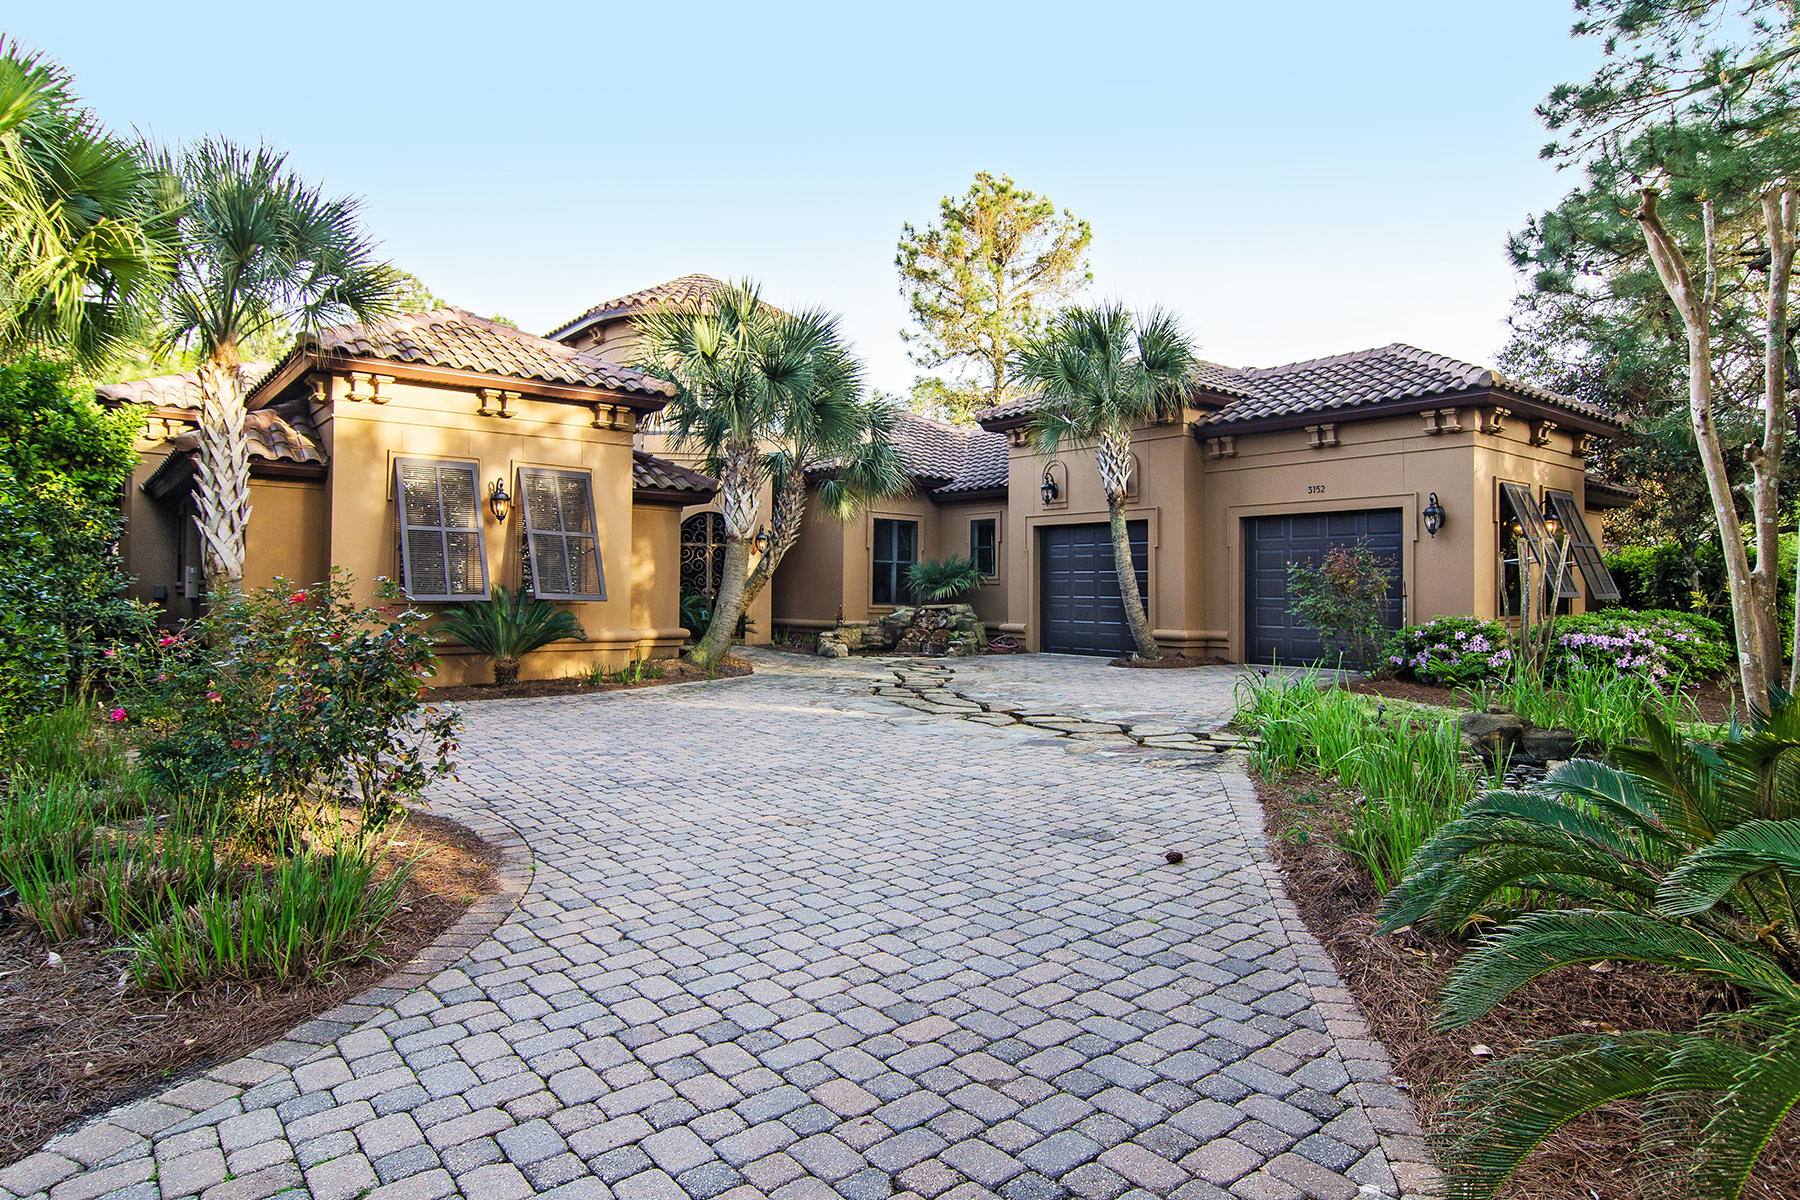 Maison unifamiliale pour l Vente à TUSCANY WITH A TOUCH OF TROPICAL ON THE 11TH FAIRWAY OF BURNT PINE GOLF CLUB 3152 Club Drive Miramar Beach, Florida, 32550 États-Unis